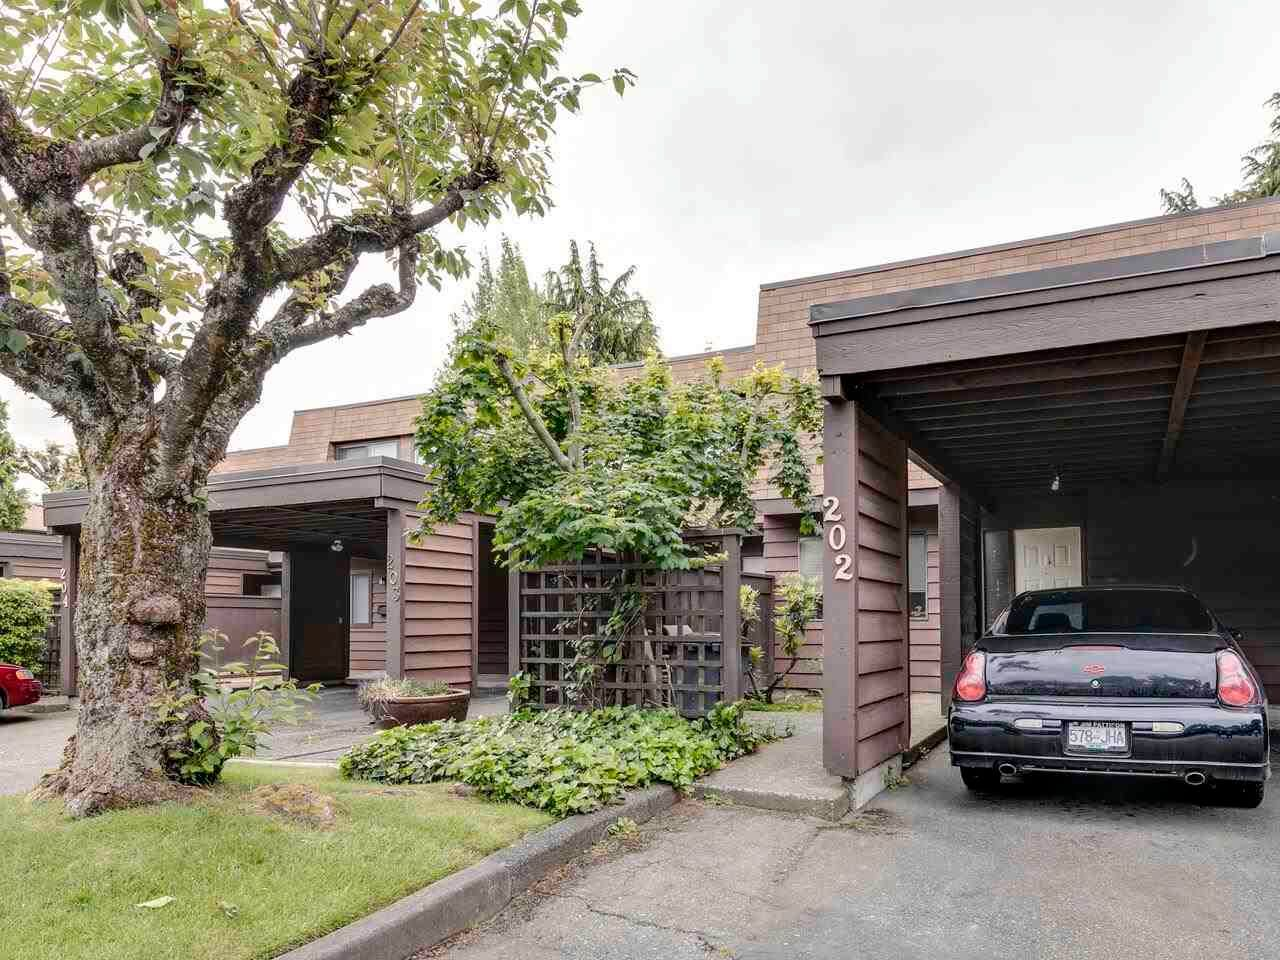 """Main Photo: 202 9468 PRINCE CHARLES Boulevard in Surrey: Queen Mary Park Surrey Townhouse for sale in """"Prince Charles Estates"""" : MLS®# R2585737"""